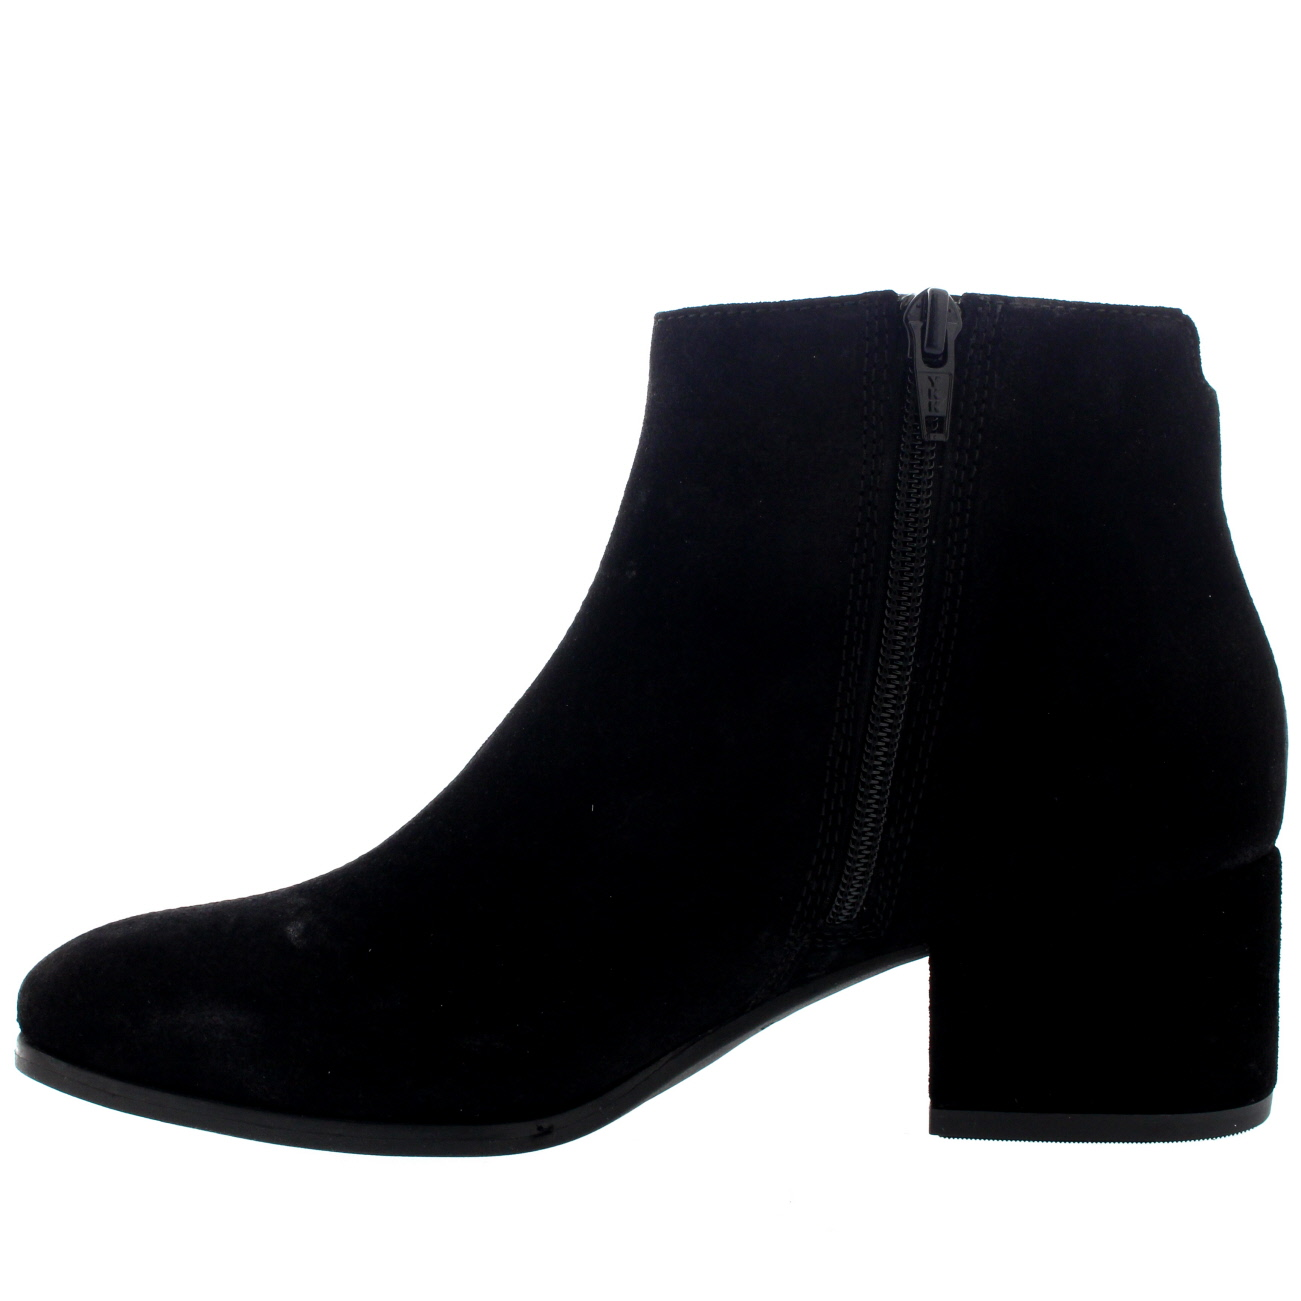 womens vagabond daisy suede black casual block heel chelsea ankle boots uk 3 5 8 ebay. Black Bedroom Furniture Sets. Home Design Ideas